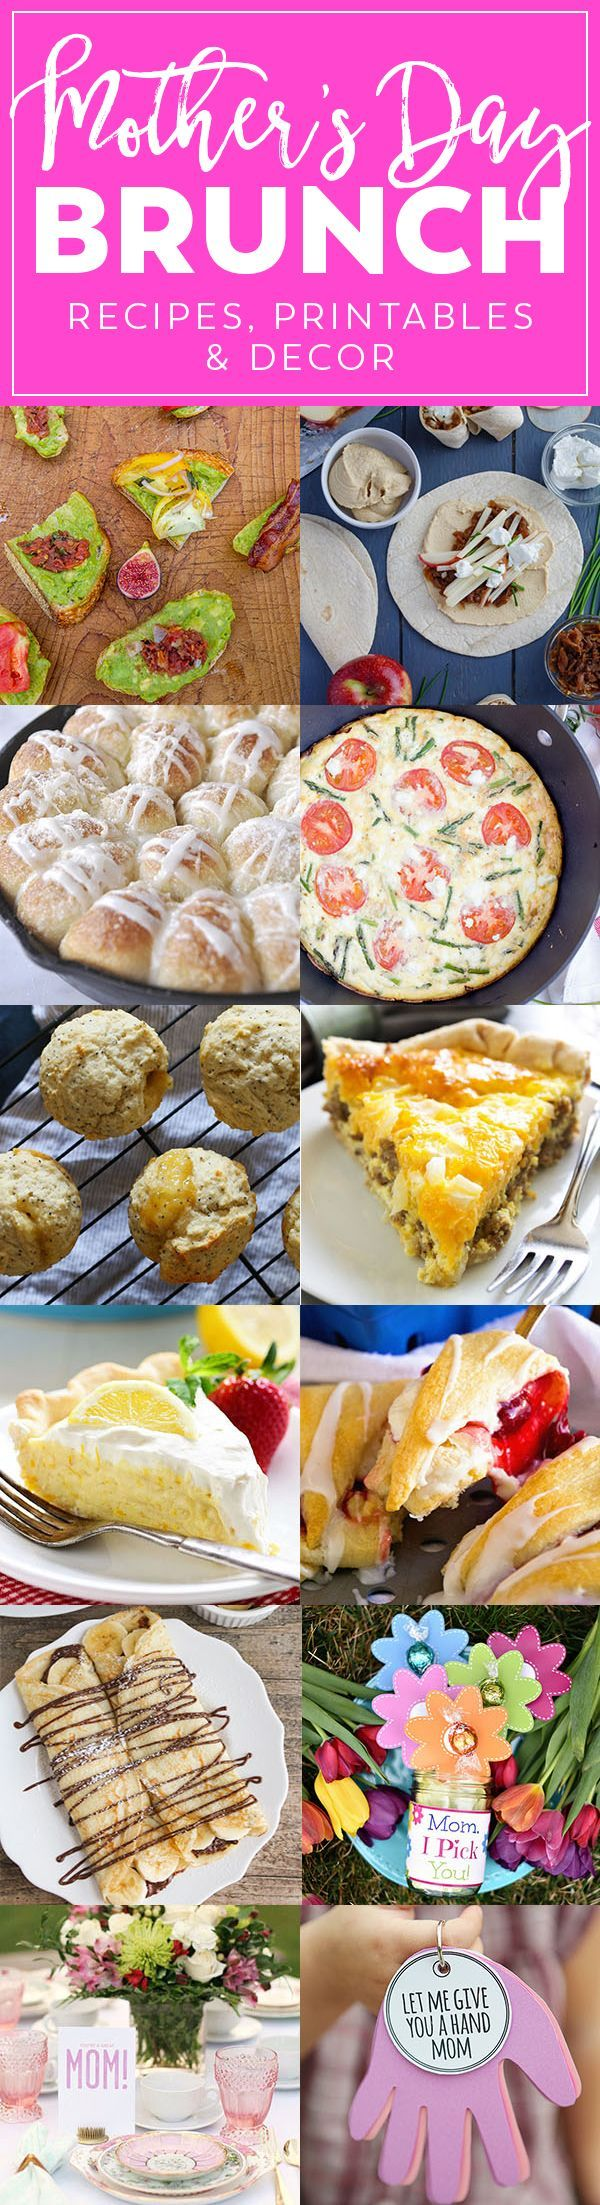 Mothers Day Brunch Ideas Amazing Recipes Pinterest Mothers